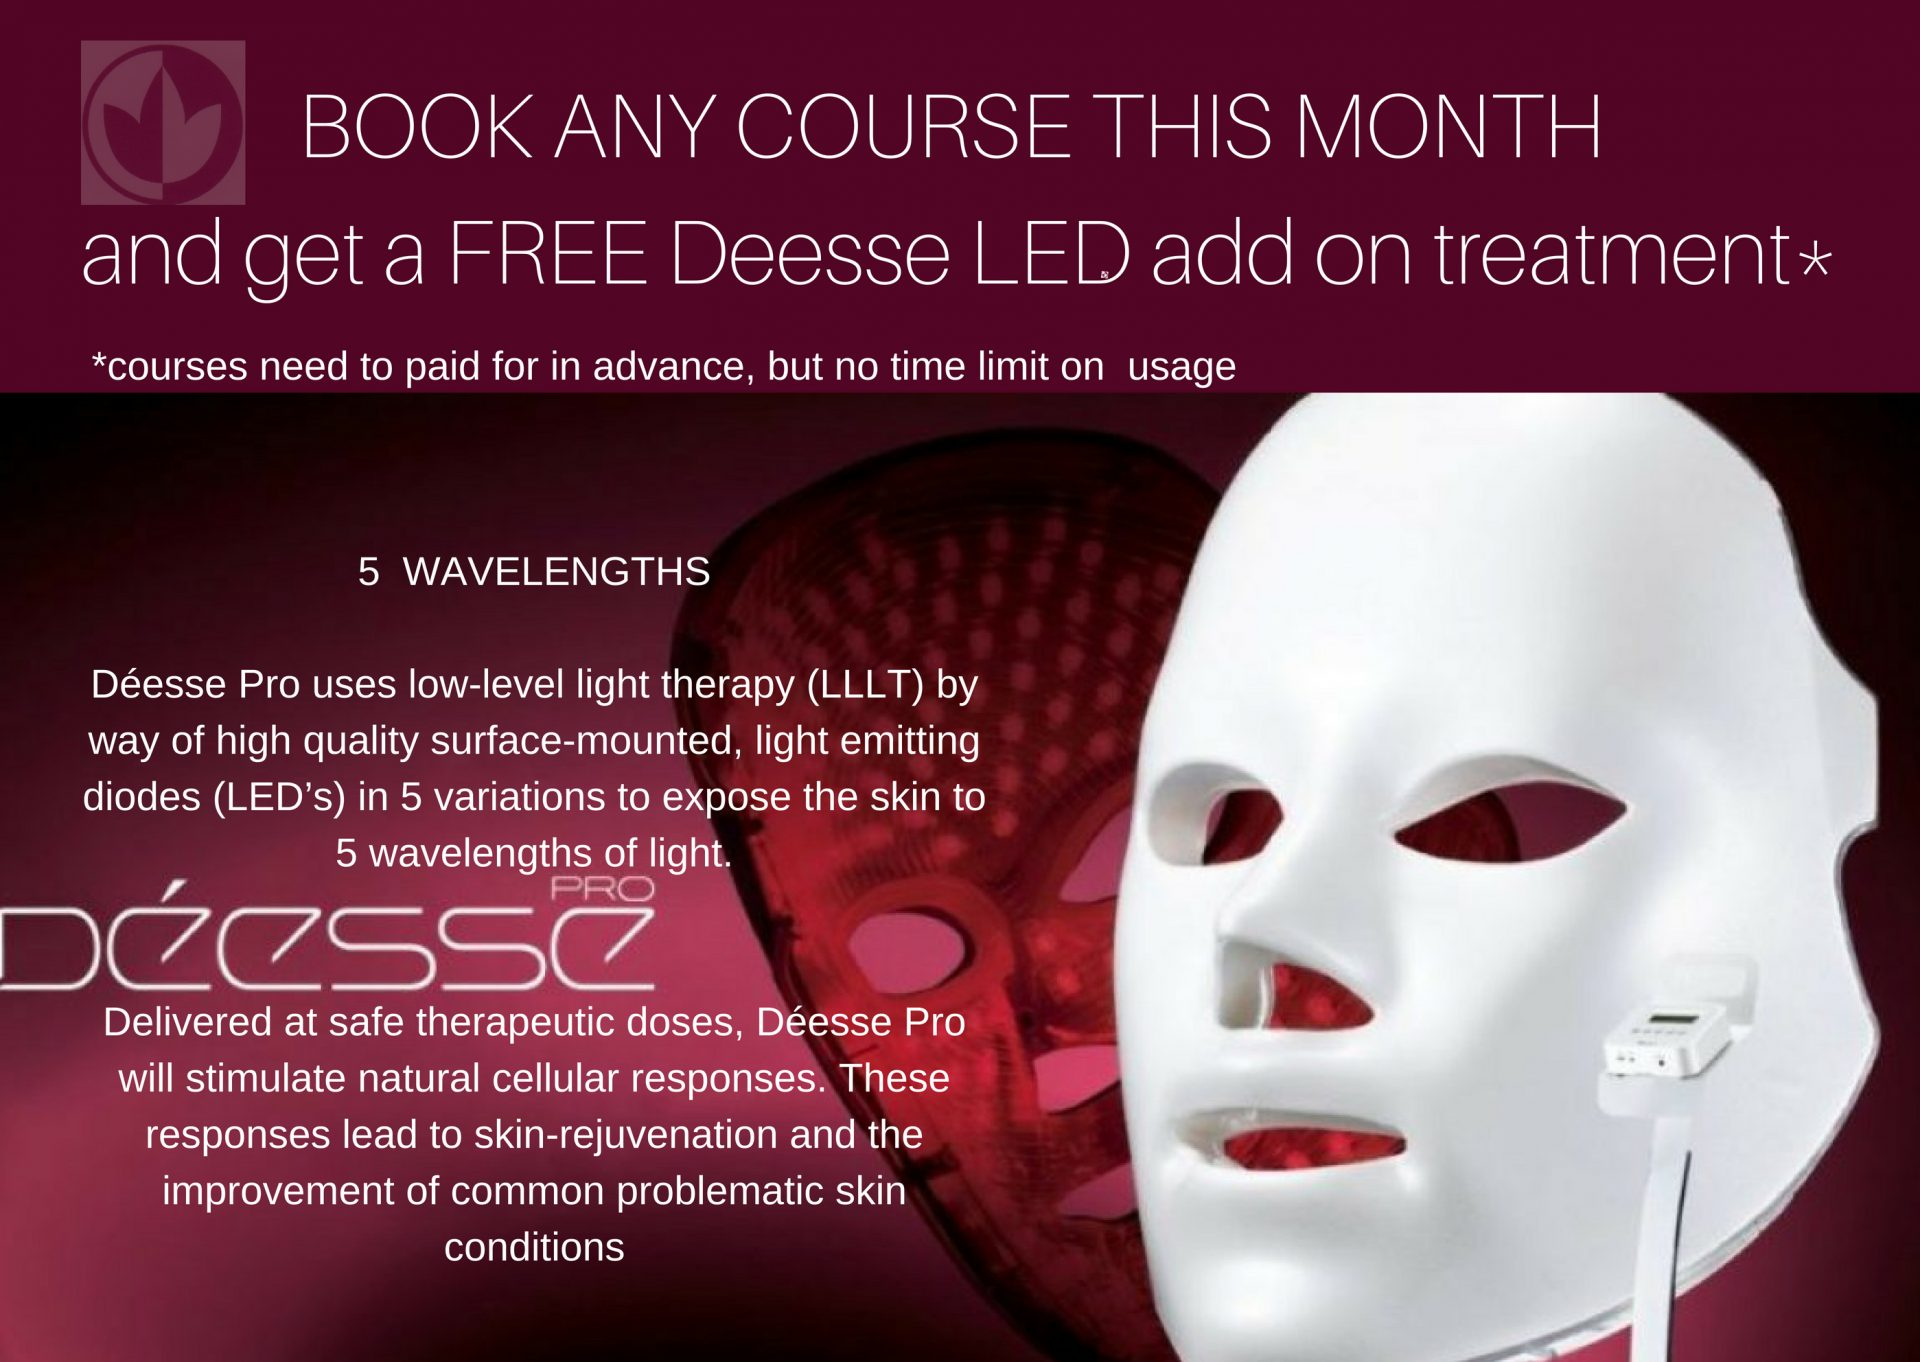 Free Deesse LED treatment with every course booking